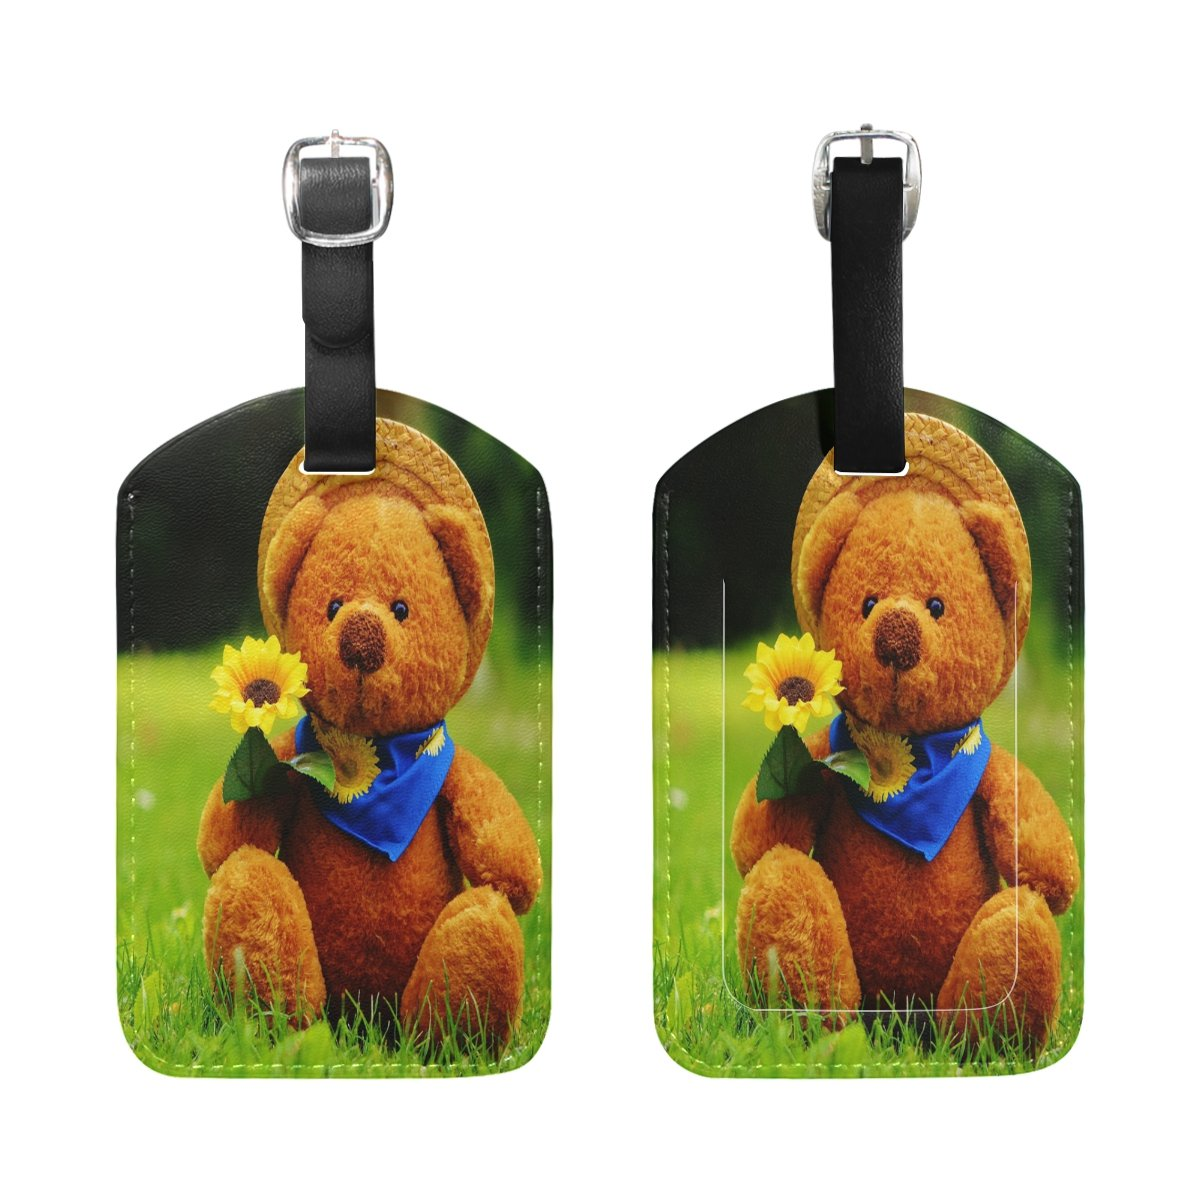 1Pcs Saobao Travel Luggage Tag Teddy Bears And Sunflowers PU Leather Baggage Suitcase Travel ID Bag Tag